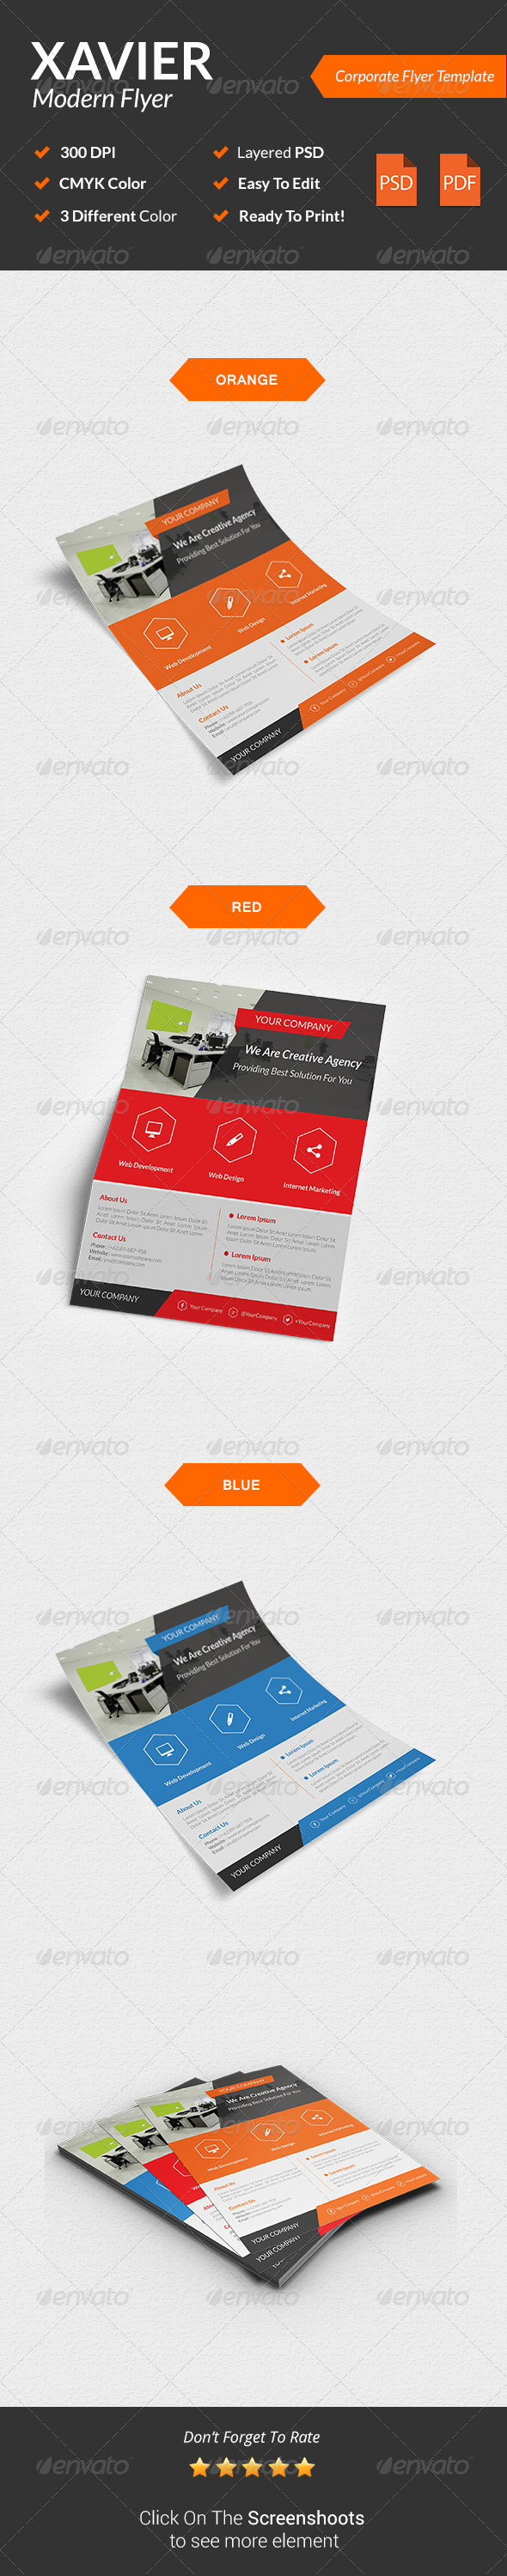 GraphicRiver Xavier Modern Corporate Flyer 8542020